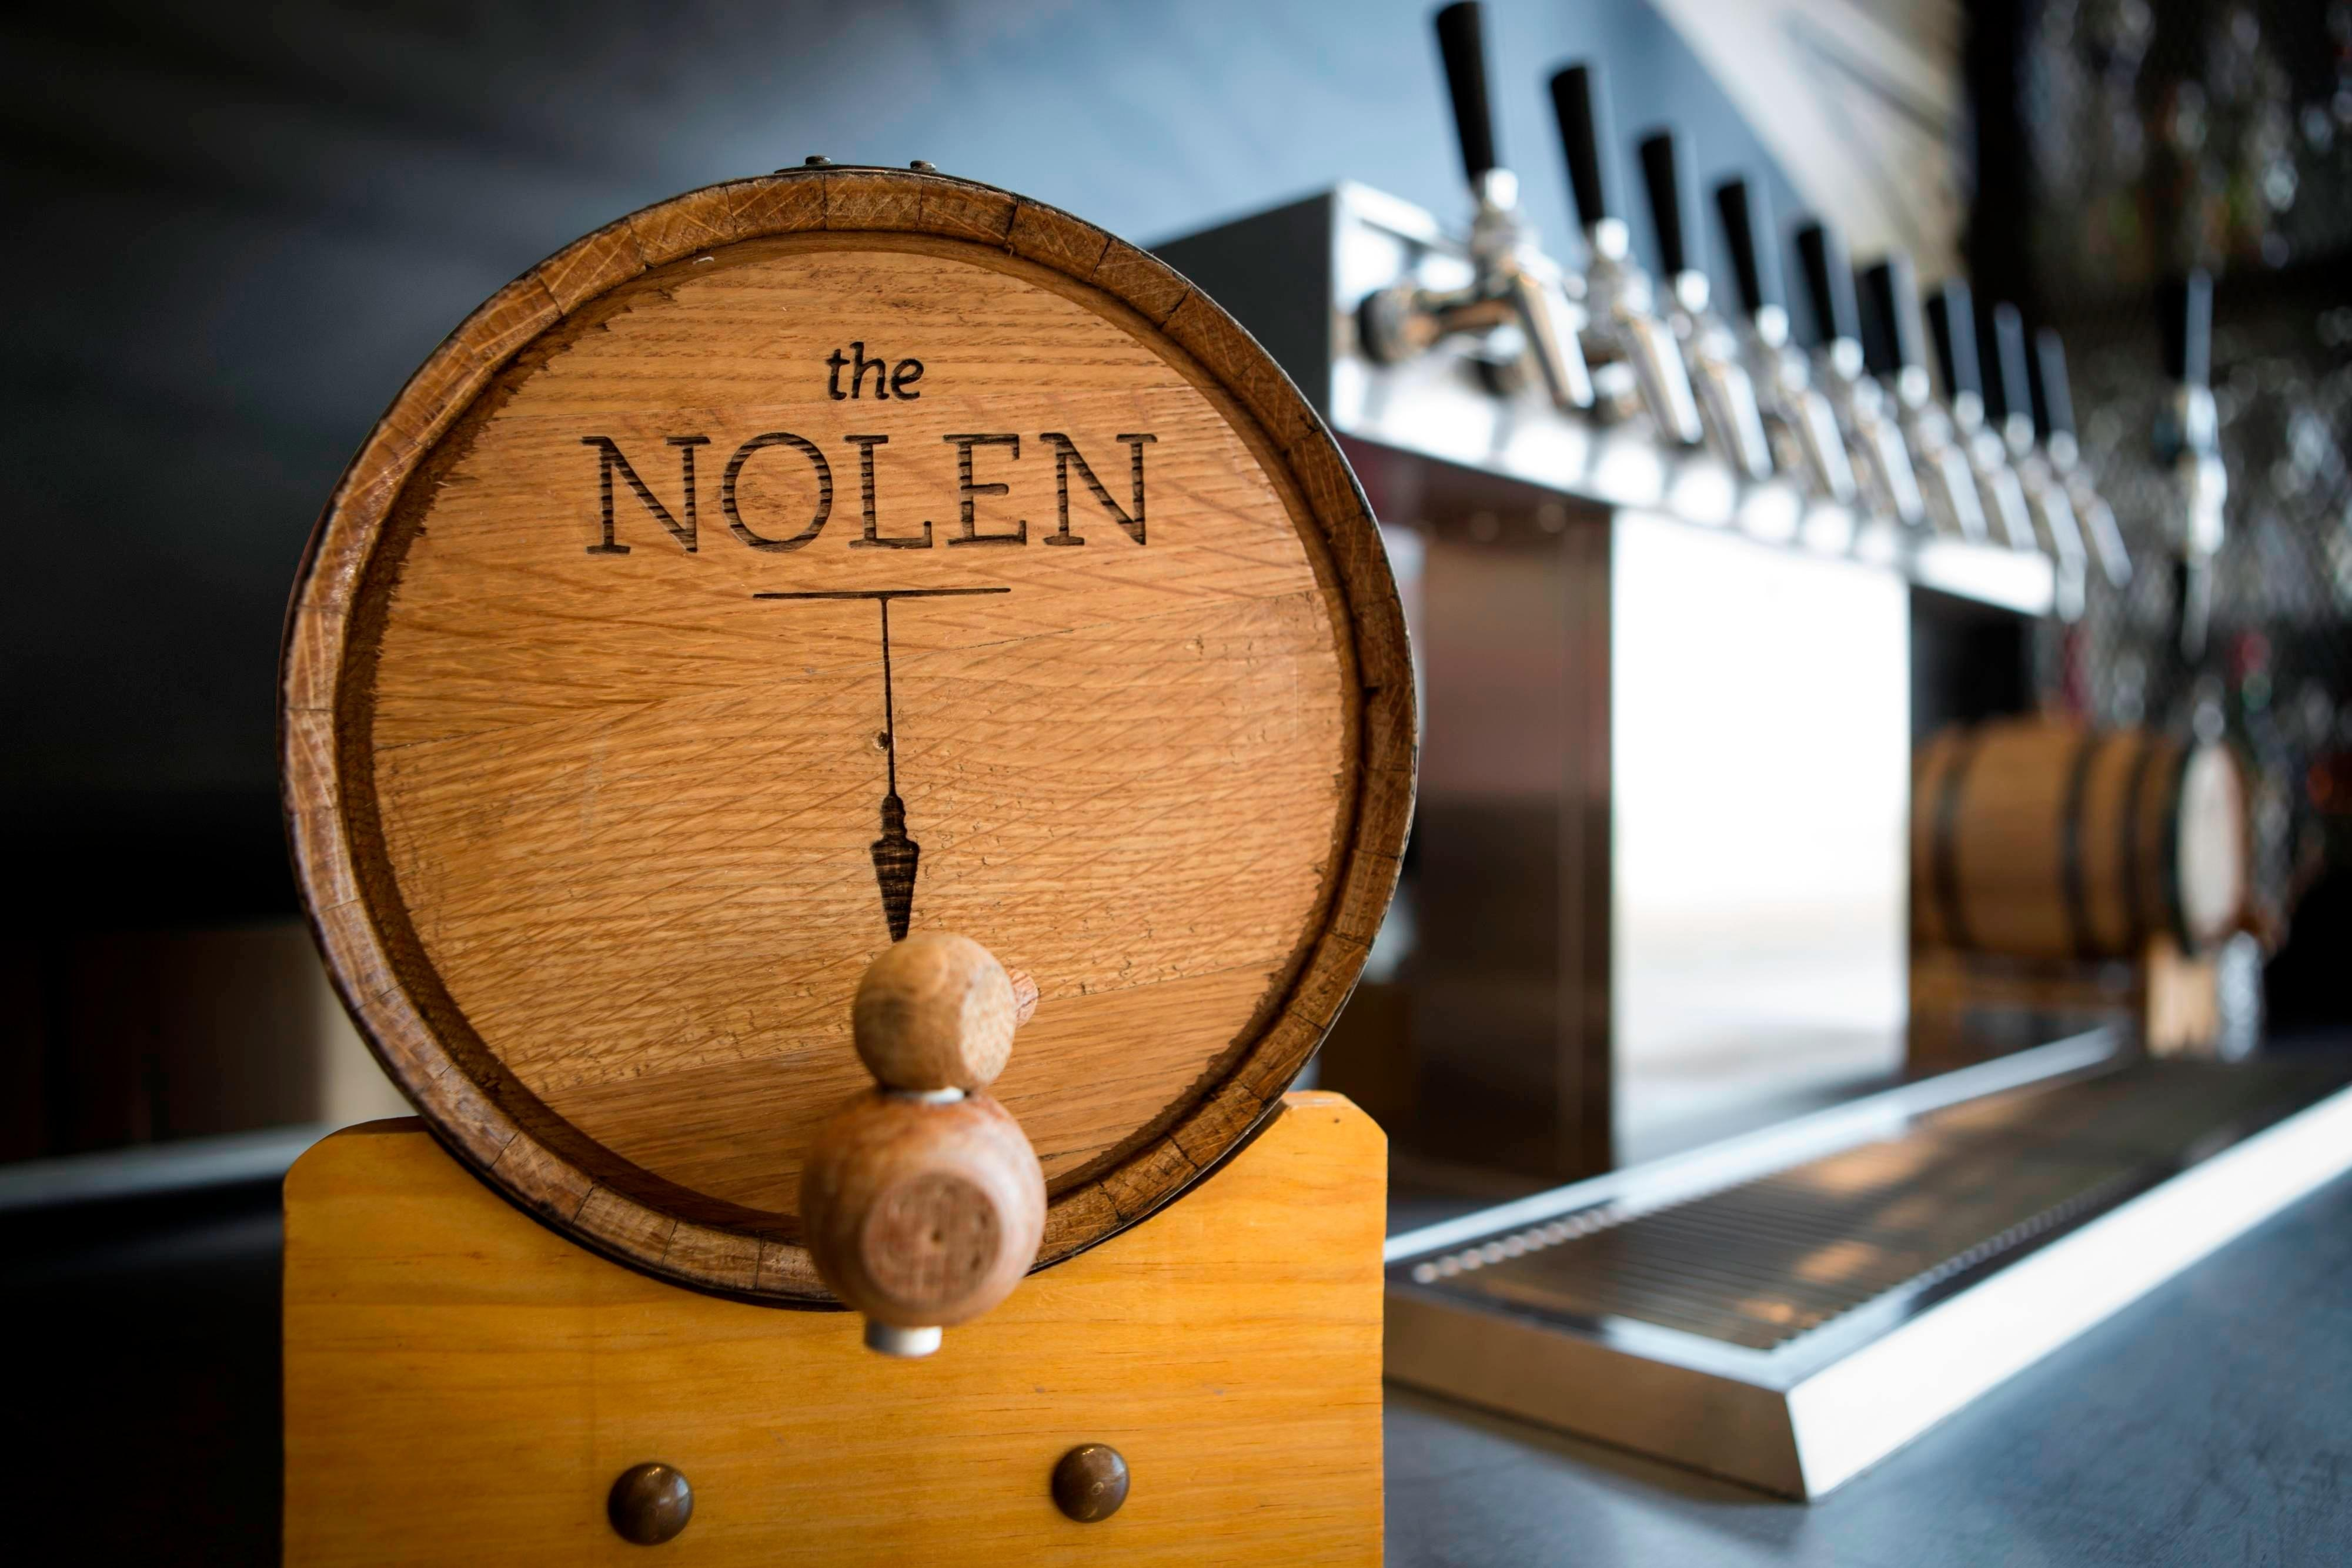 Nolen Rooftop Lounge Barrel Aged Cocktails